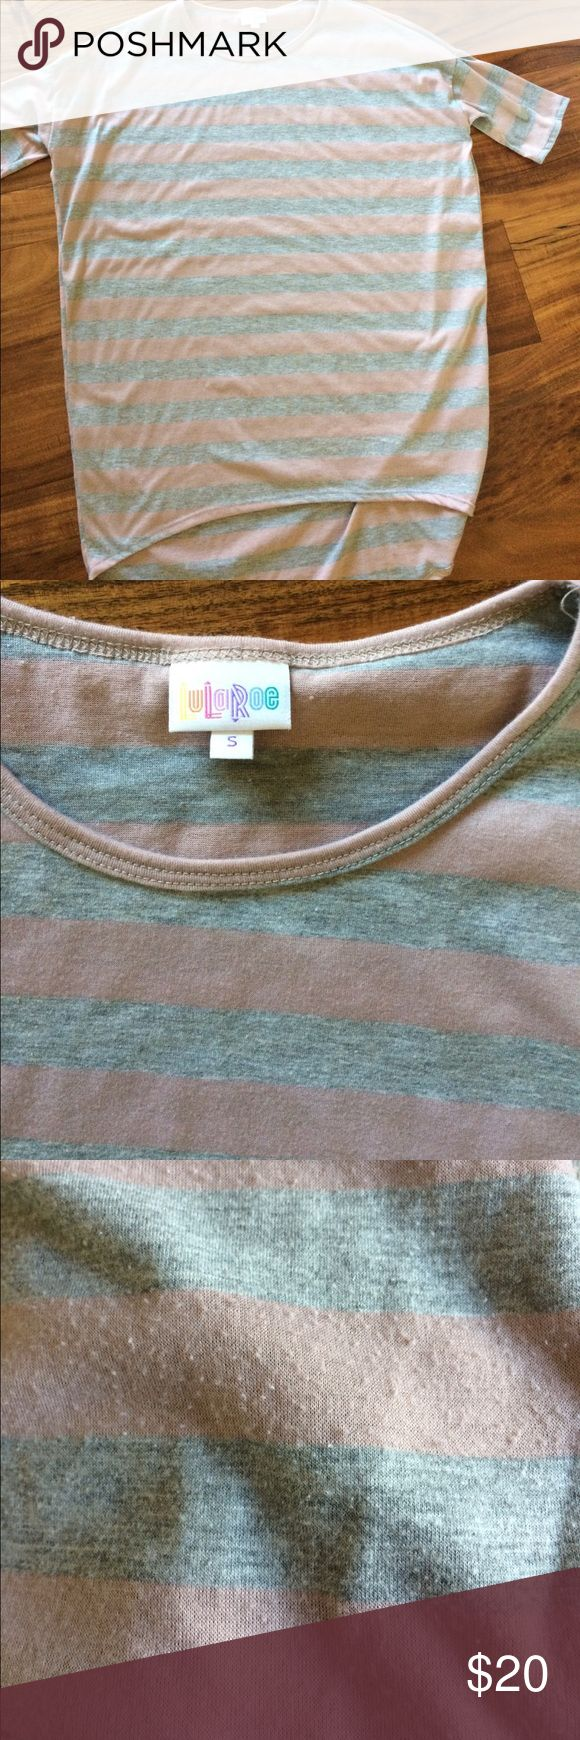 LuLaRoe Irma S LuLaRoe Irma in size S. Size down two times from your usual top size. This is a mauve/blush and light grey stripe. Gorgeous even with jeans!! Worn and washed per LLR instructions but has some pilling. See last pic. A sweater stone or sweater shaver should take care of the pills if it bothers you. (Soft material gets pills) LuLaRoe Tops Tunics